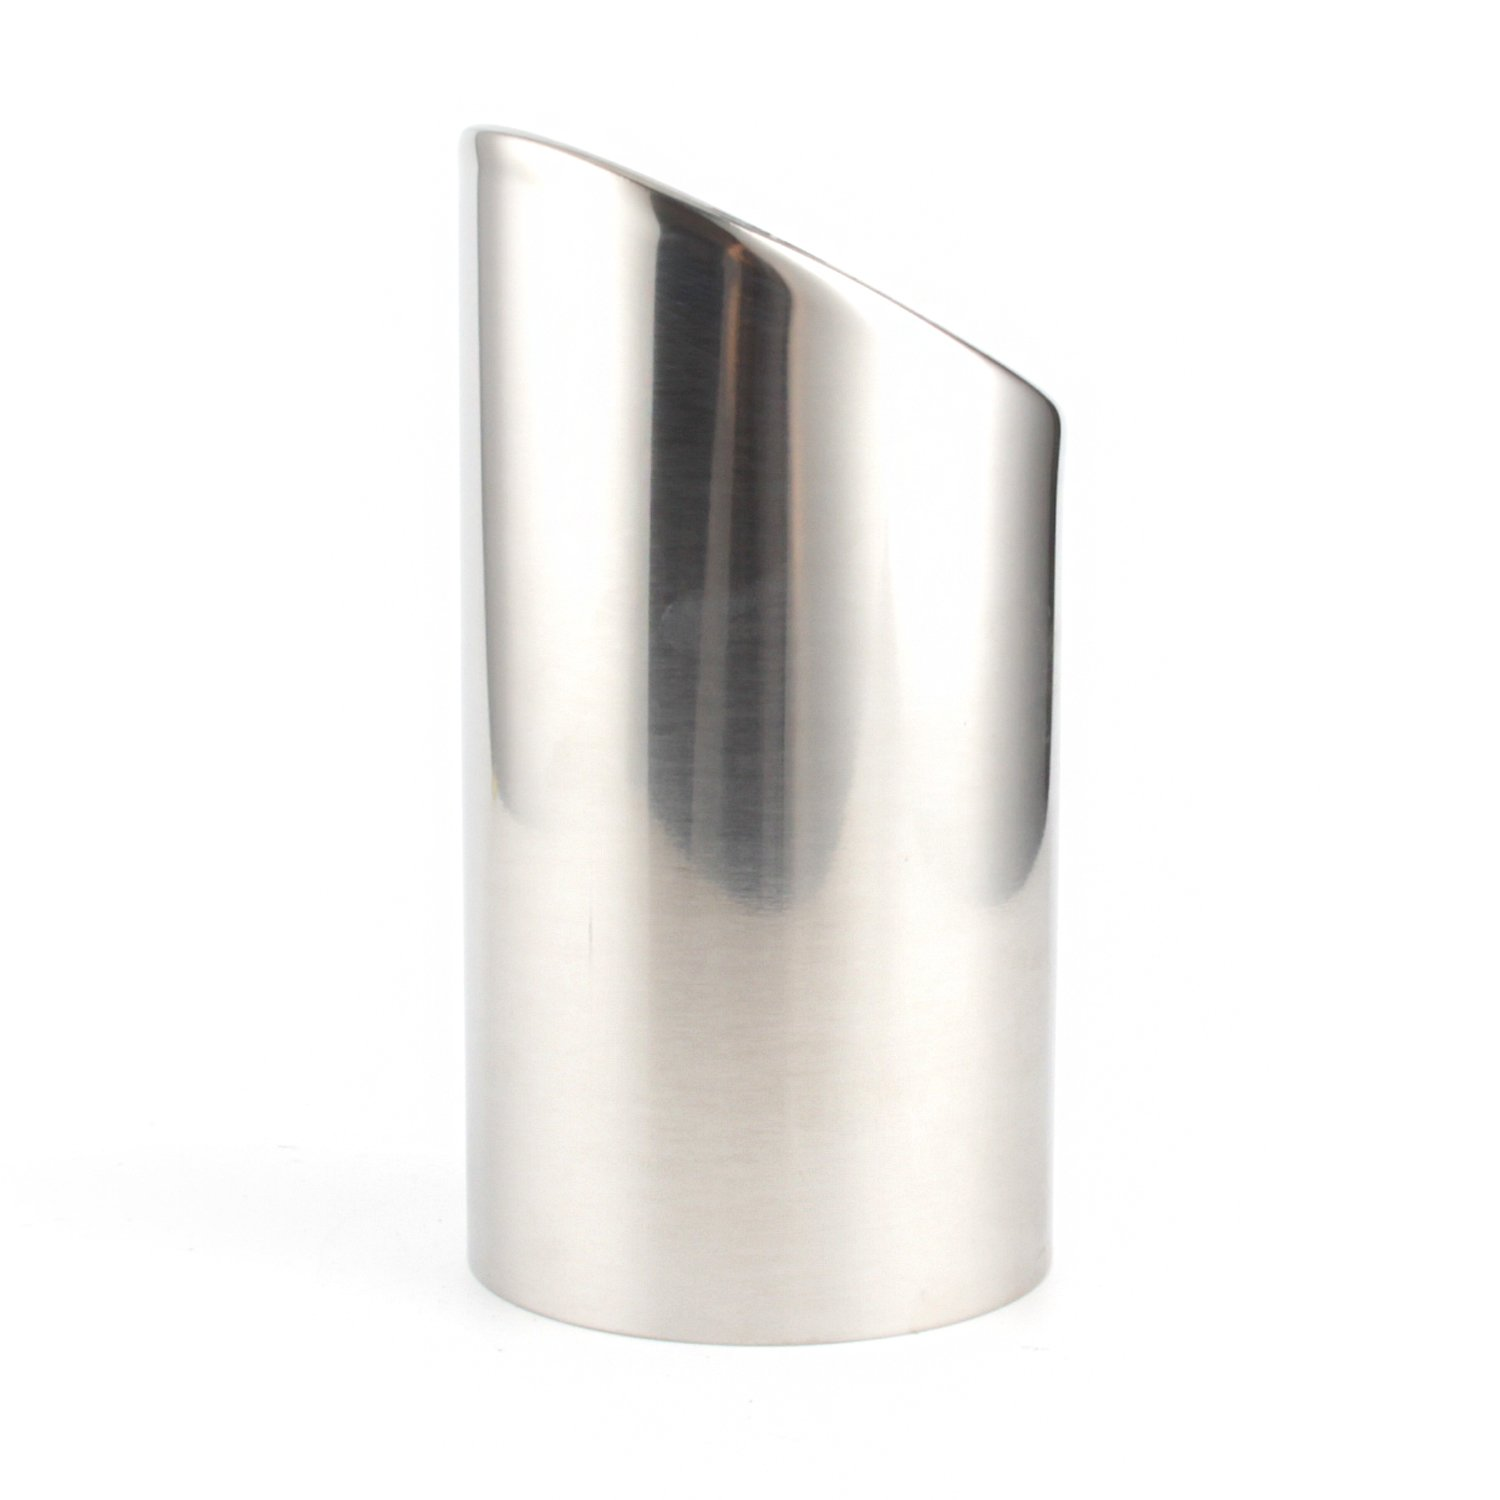 TAKPART Stainless Steel Exhaust Tail Muffler Tip Pipe for A4